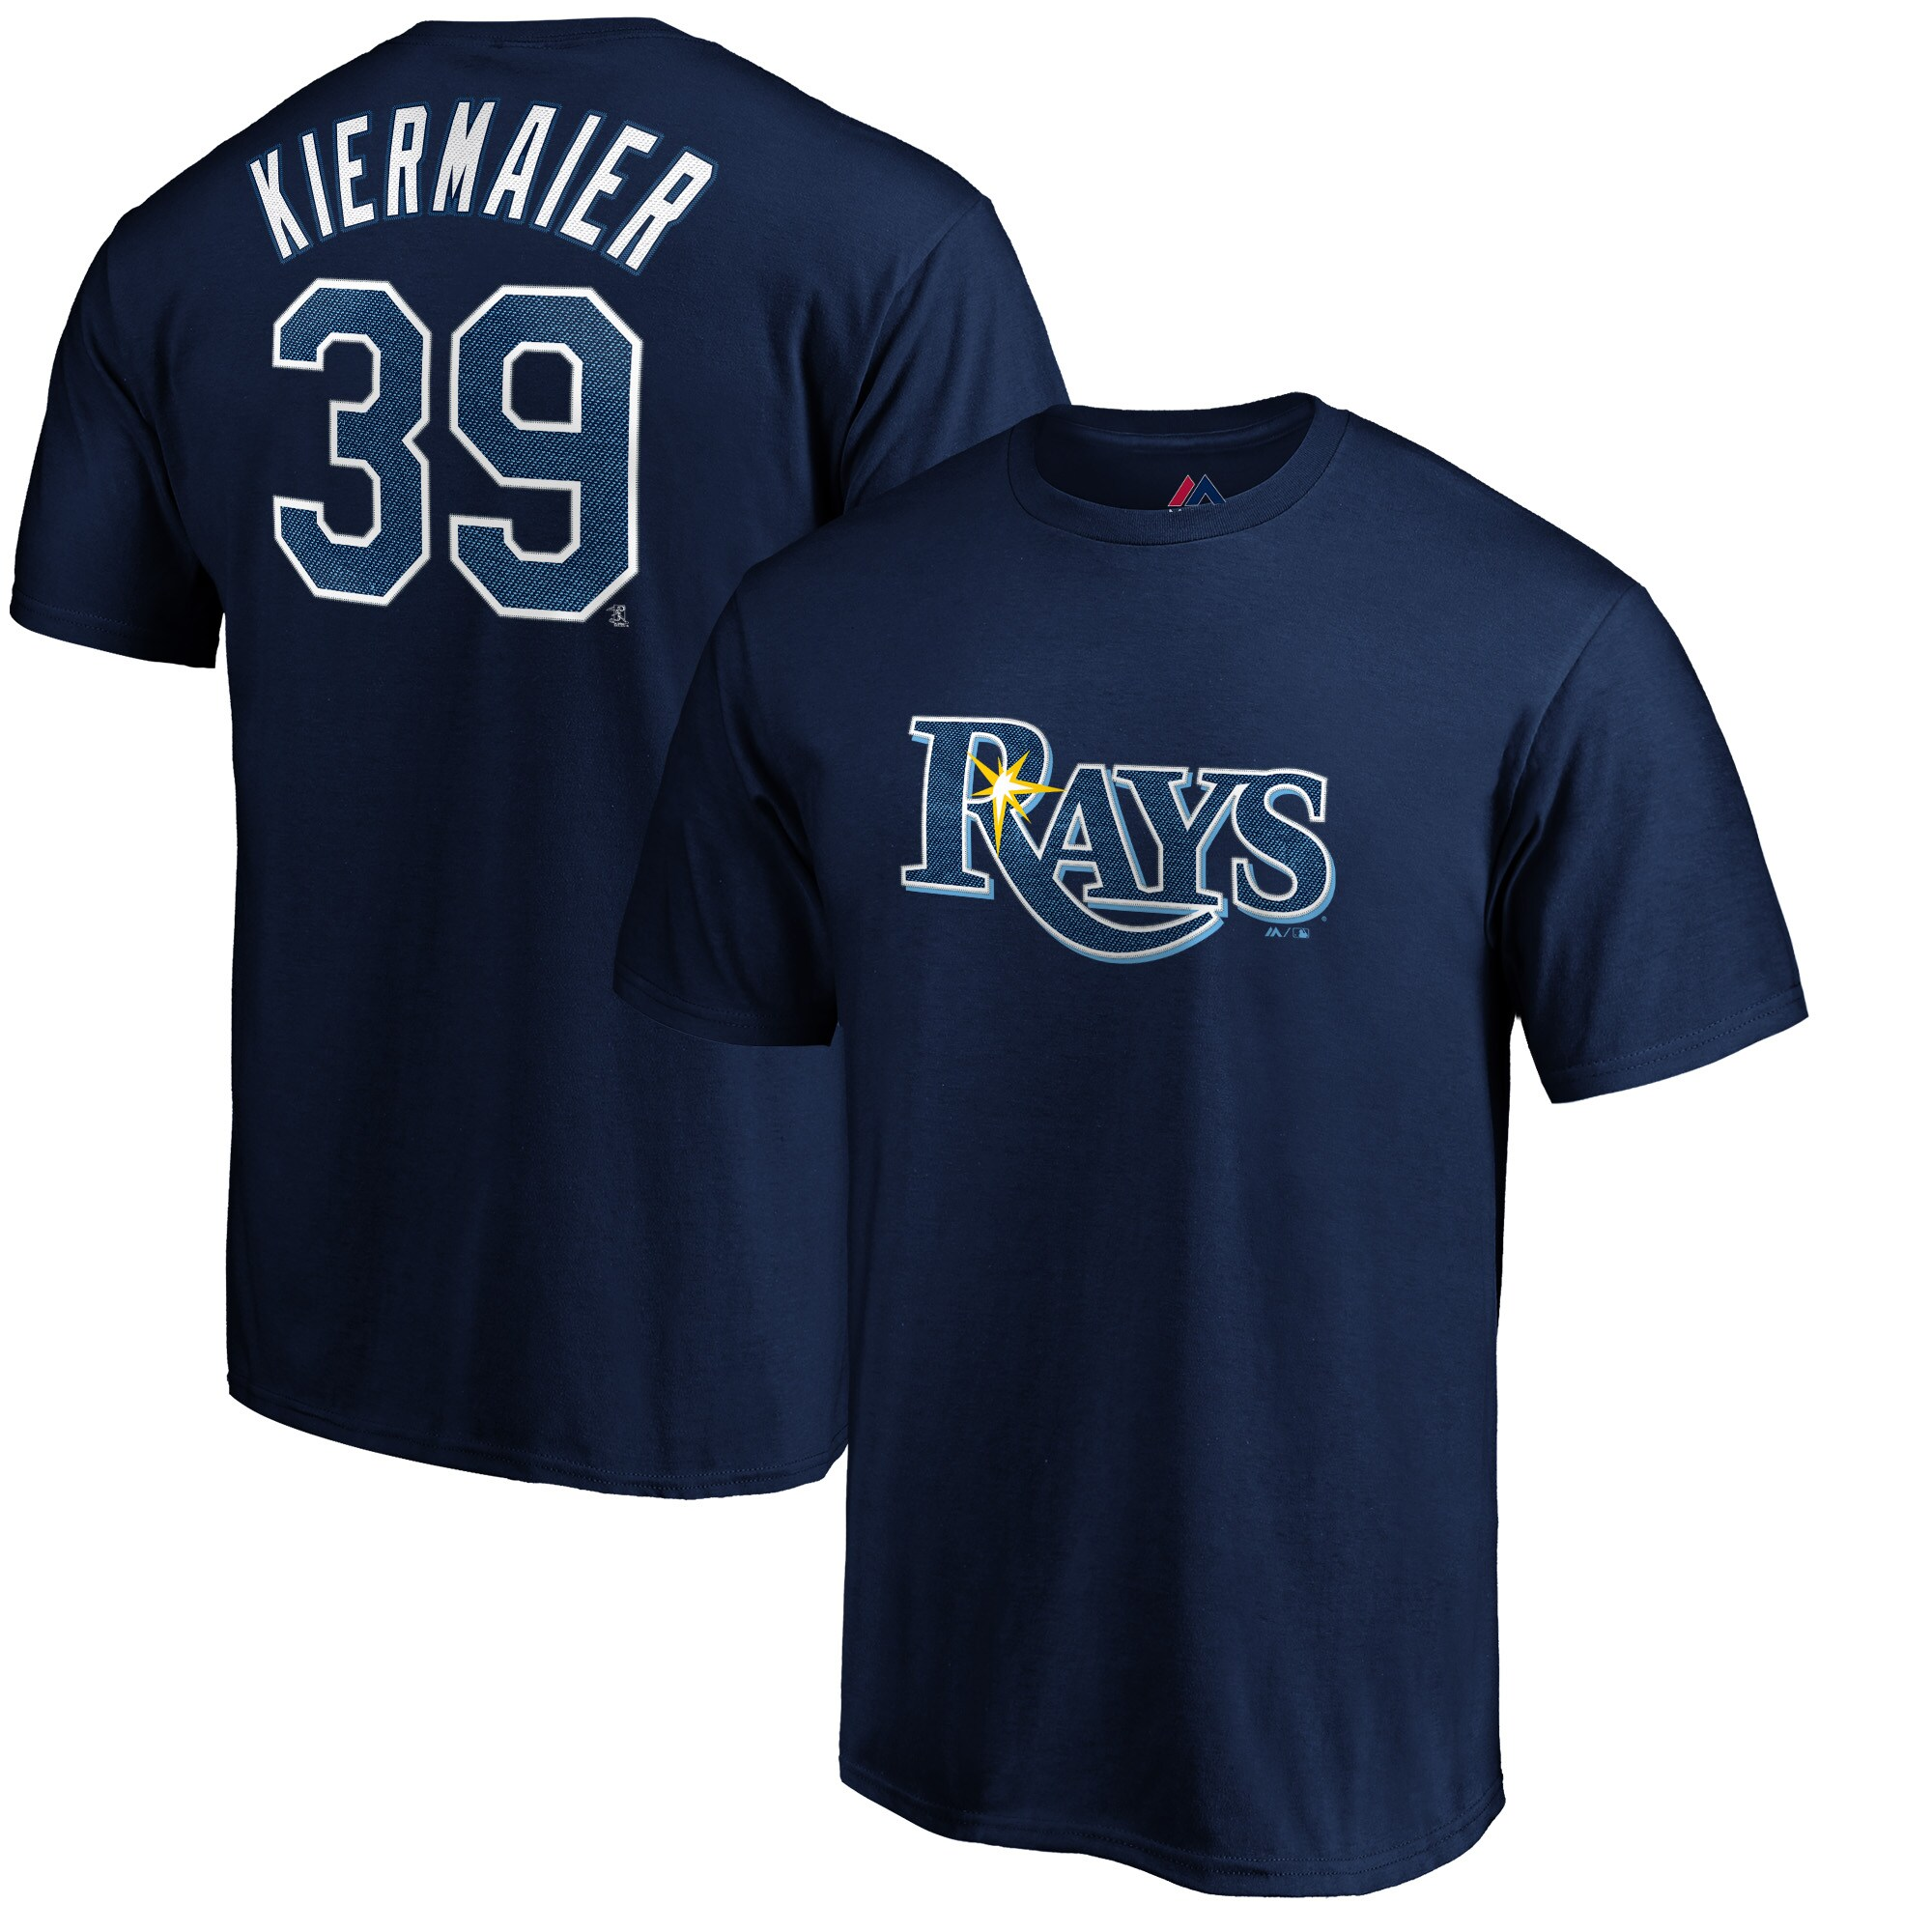 Kevin Kiermaier Tampa Bay Rays Majestic Official Name & Number T-Shirt - Navy